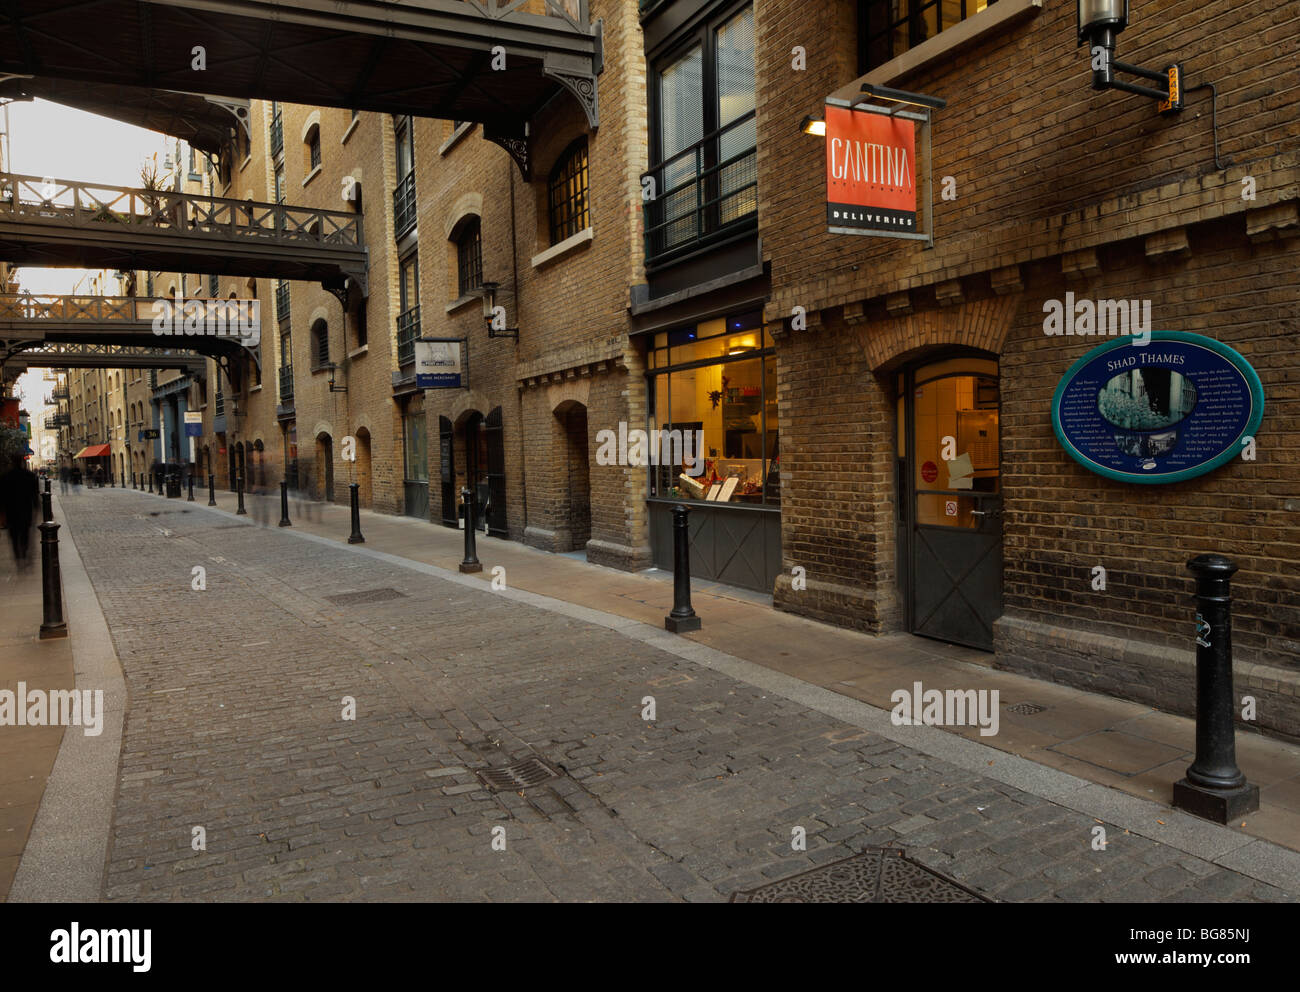 Shad Thames, London. - Stock Image